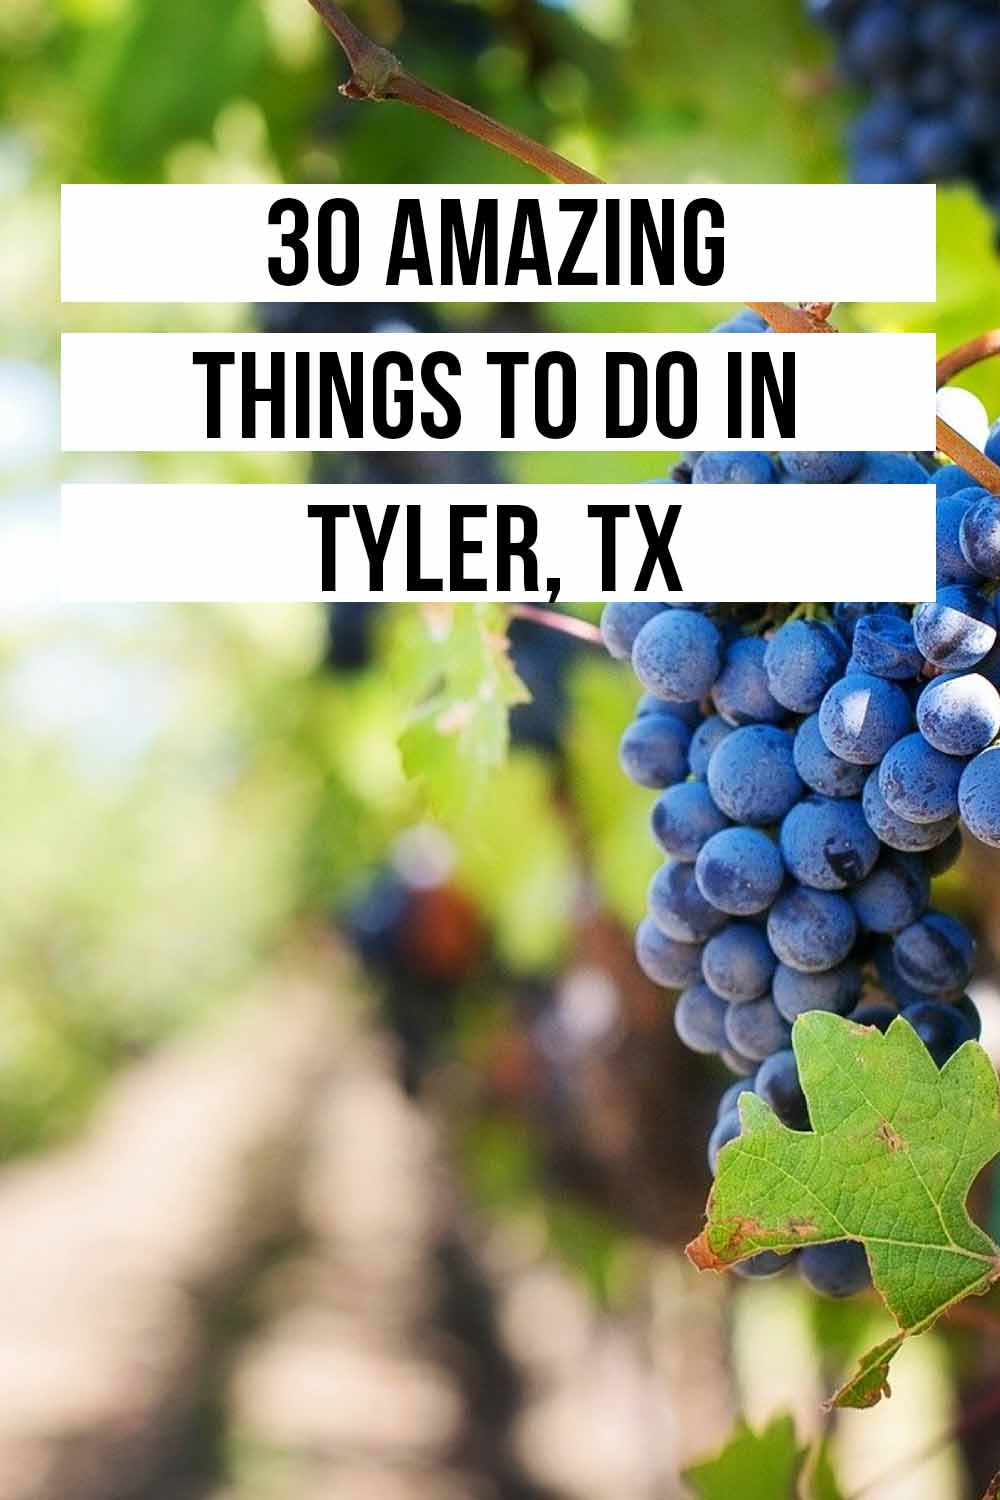 Things to do in Tyler, TX